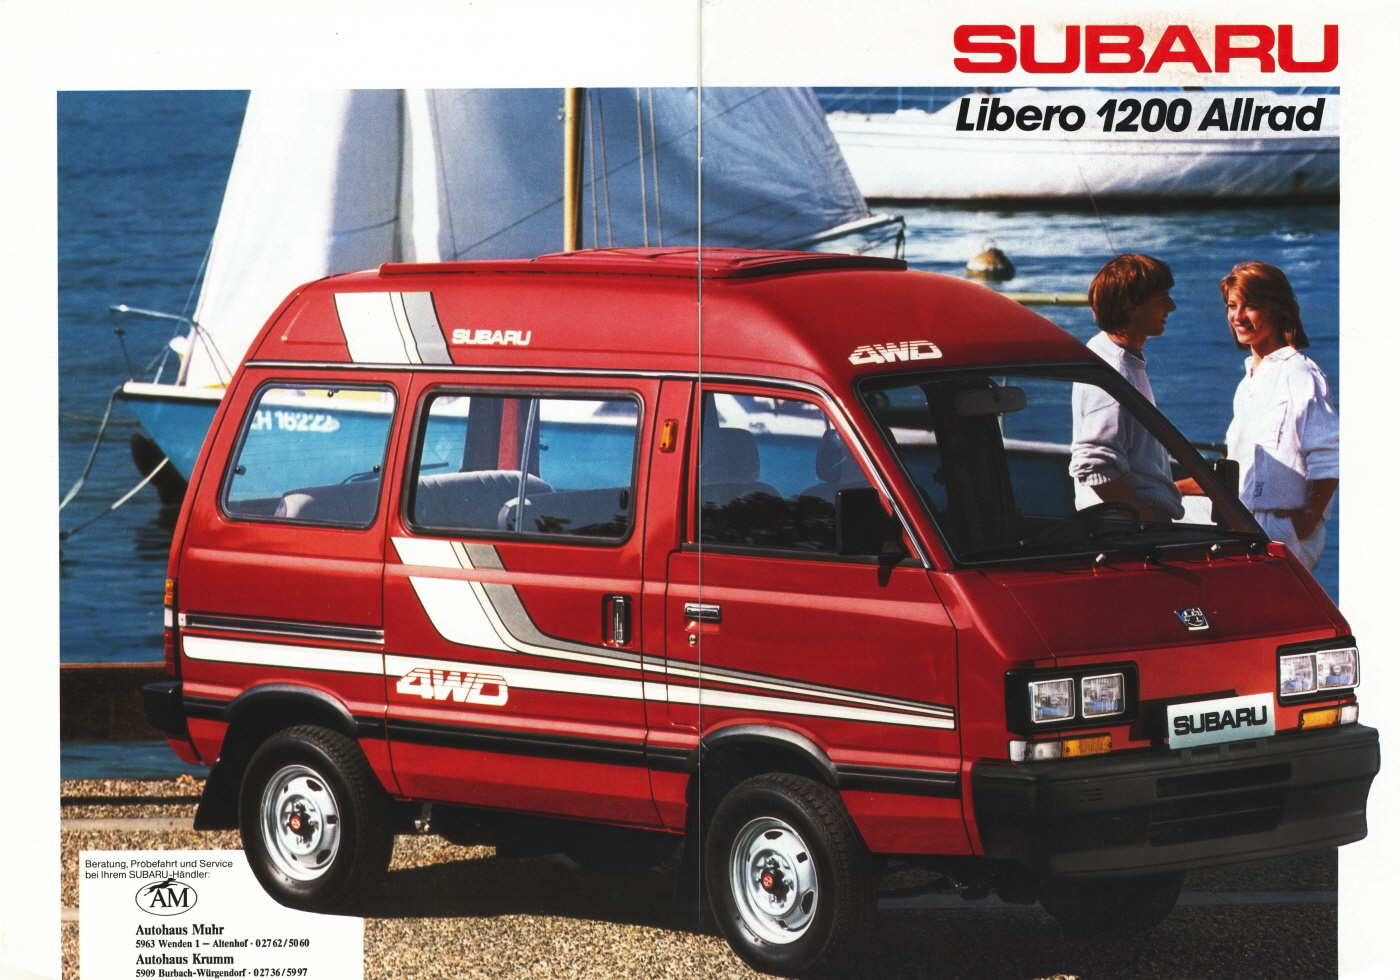 Luggage Rack Car >> Subaru Libero Bus (E10,E12) 1.2i (54 Hp)